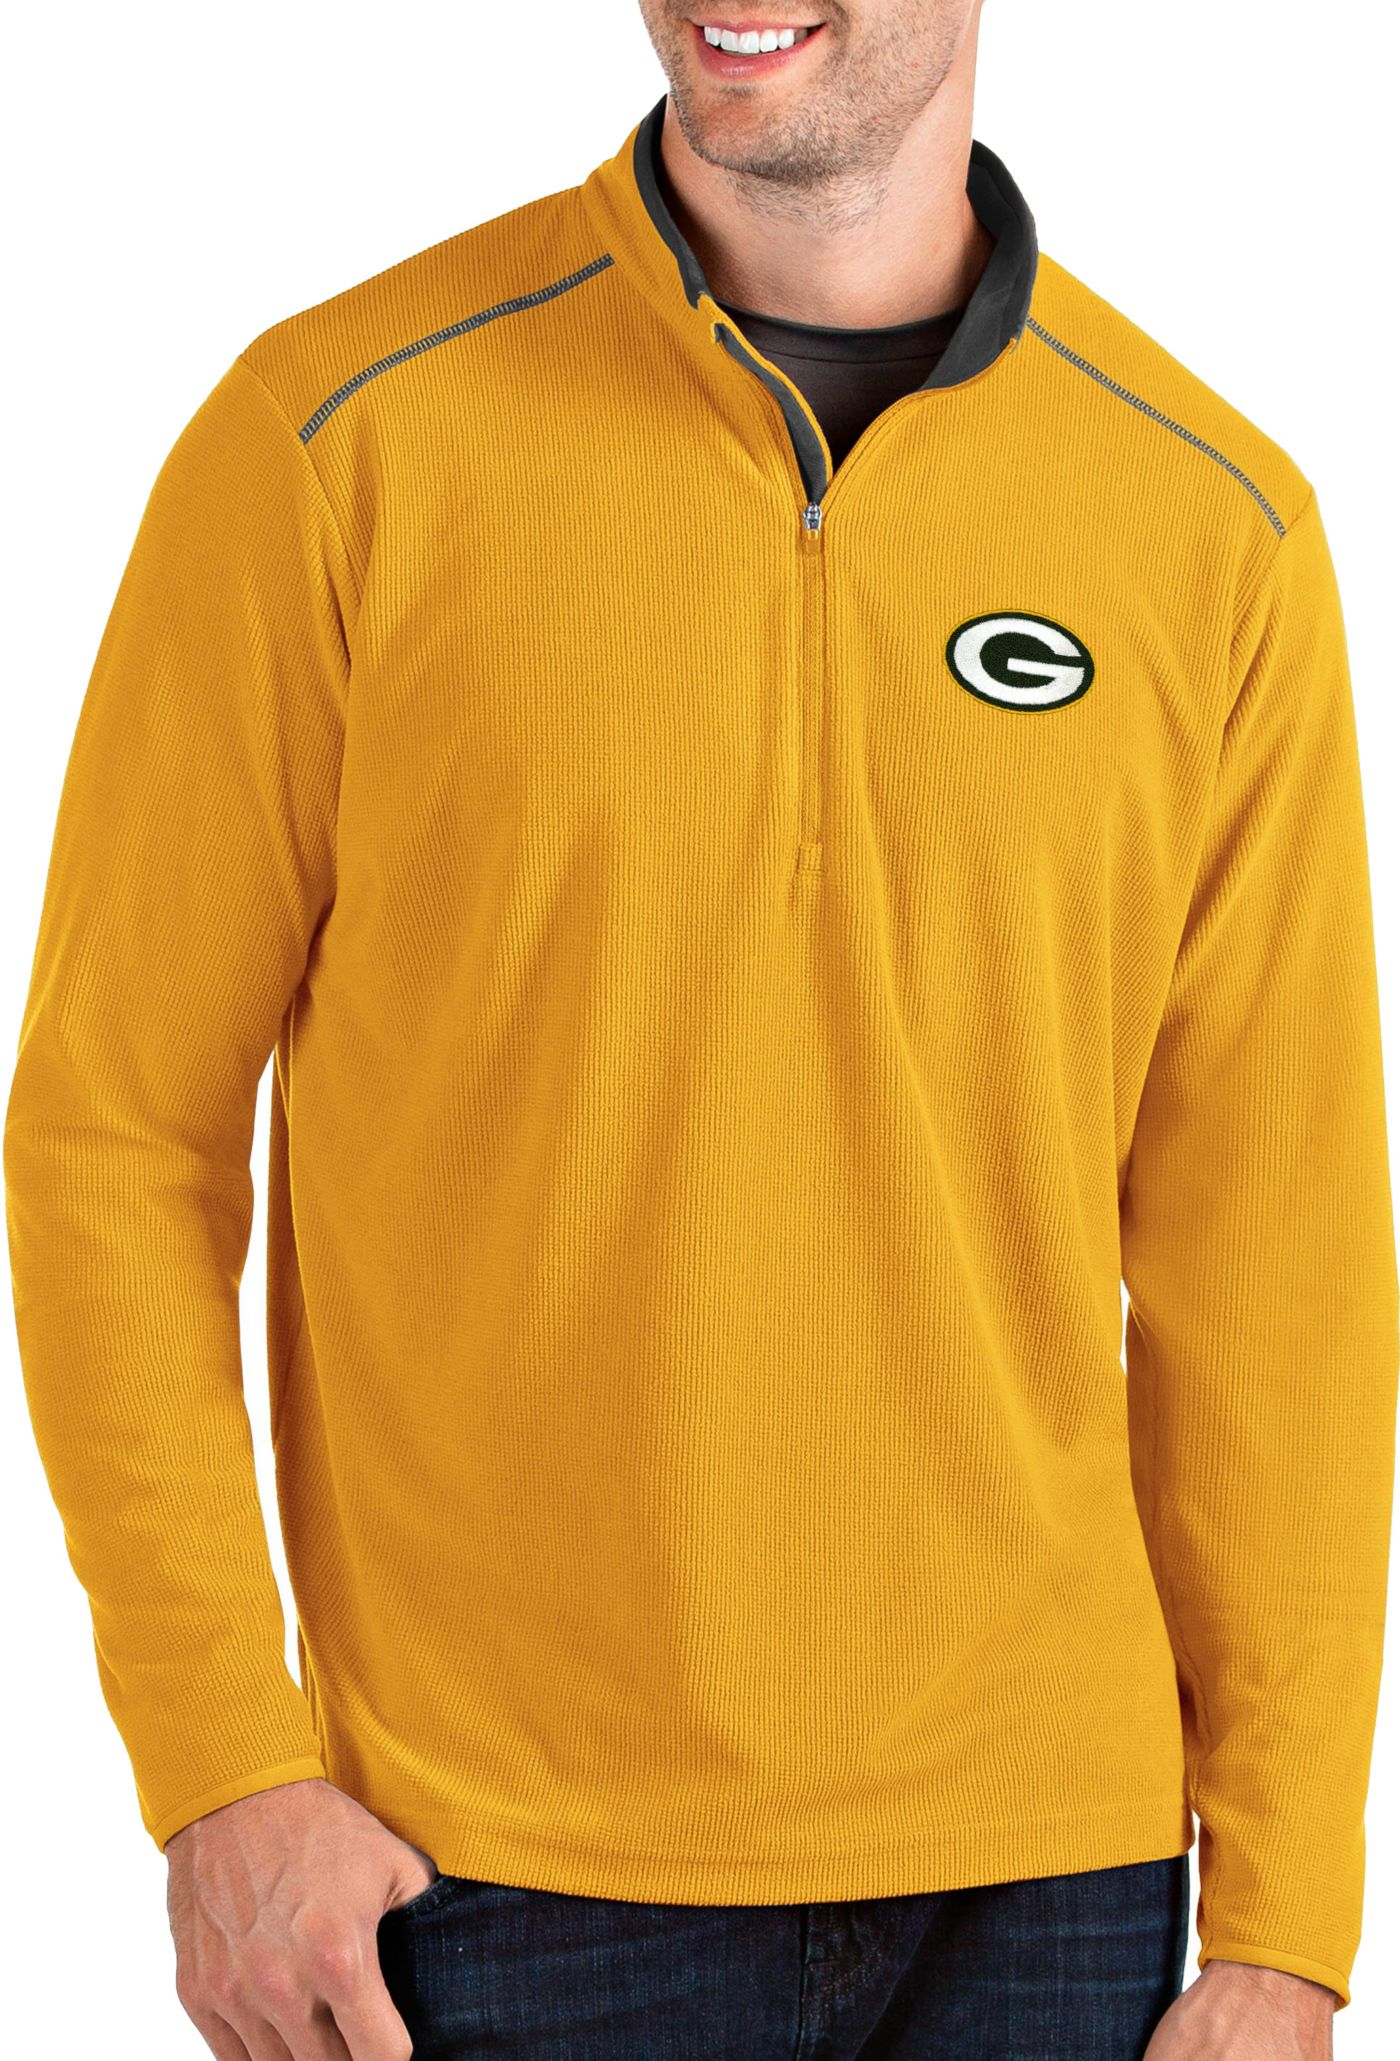 Antigua Men's Green Bay Packers Glacier Gold Quarter-Zip Pullover